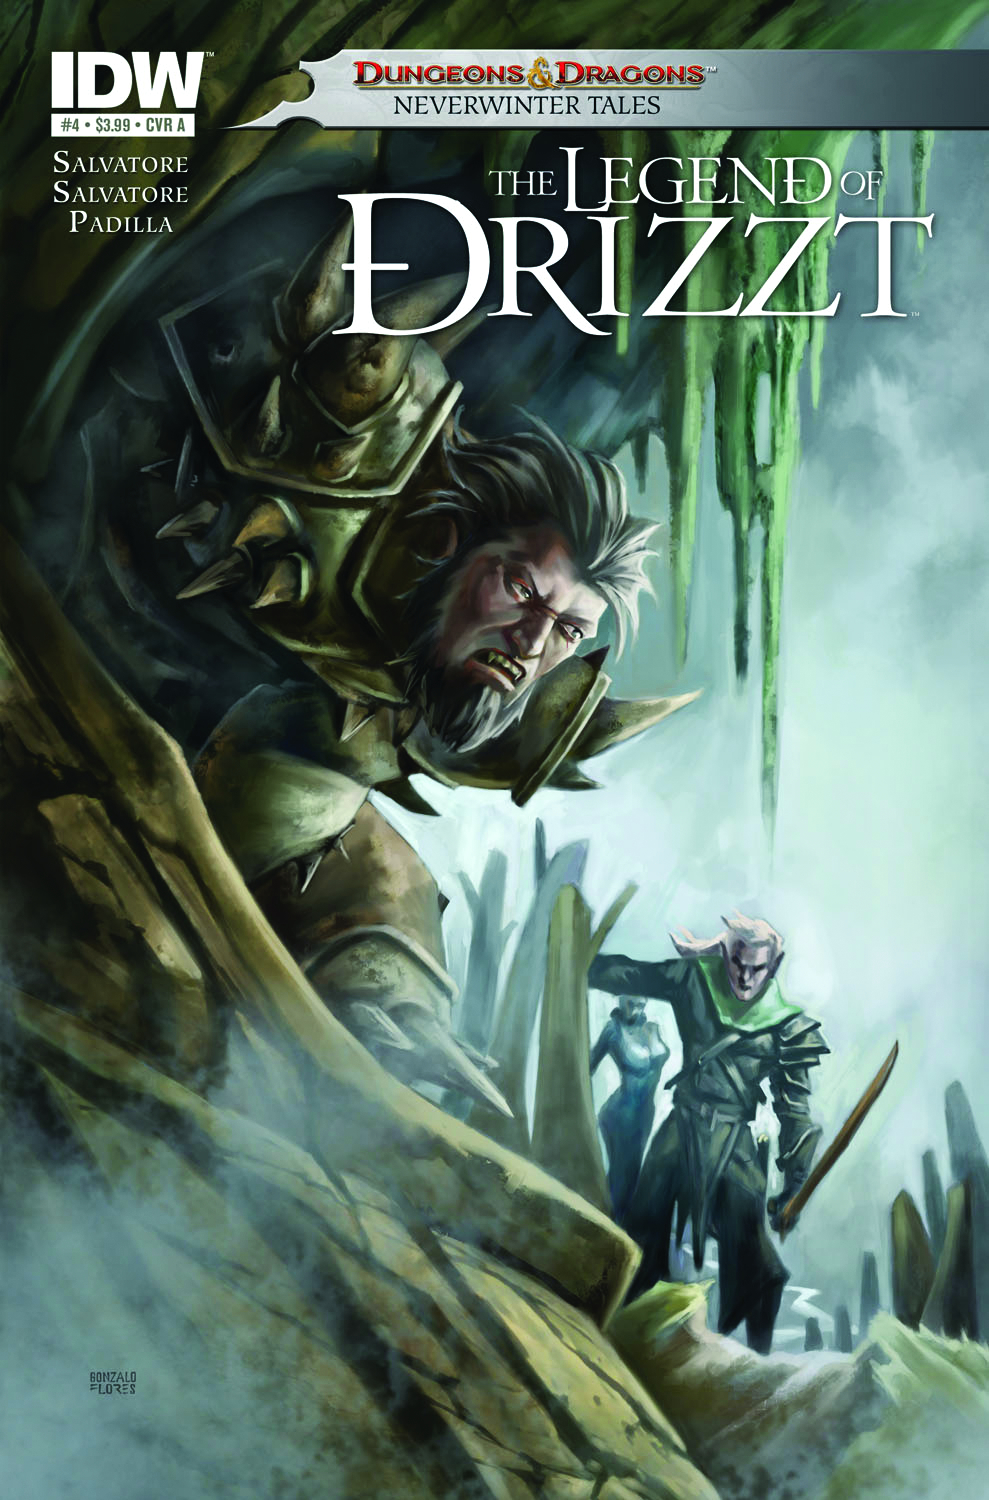 DUNGEONS & DRAGONS DRIZZT #4 (OF 5)